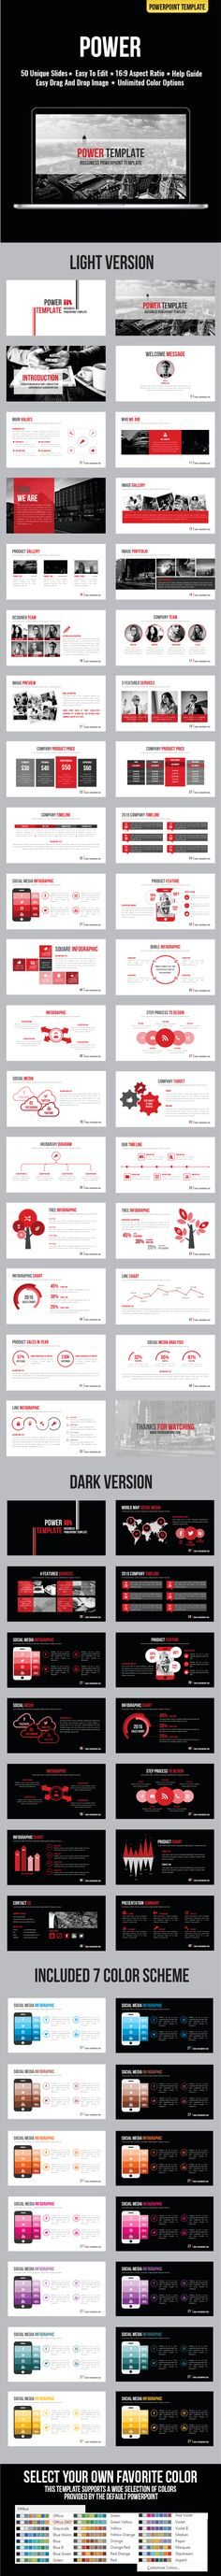 Agasha  Powerpoint Template Powerpoint Templates  Proposals